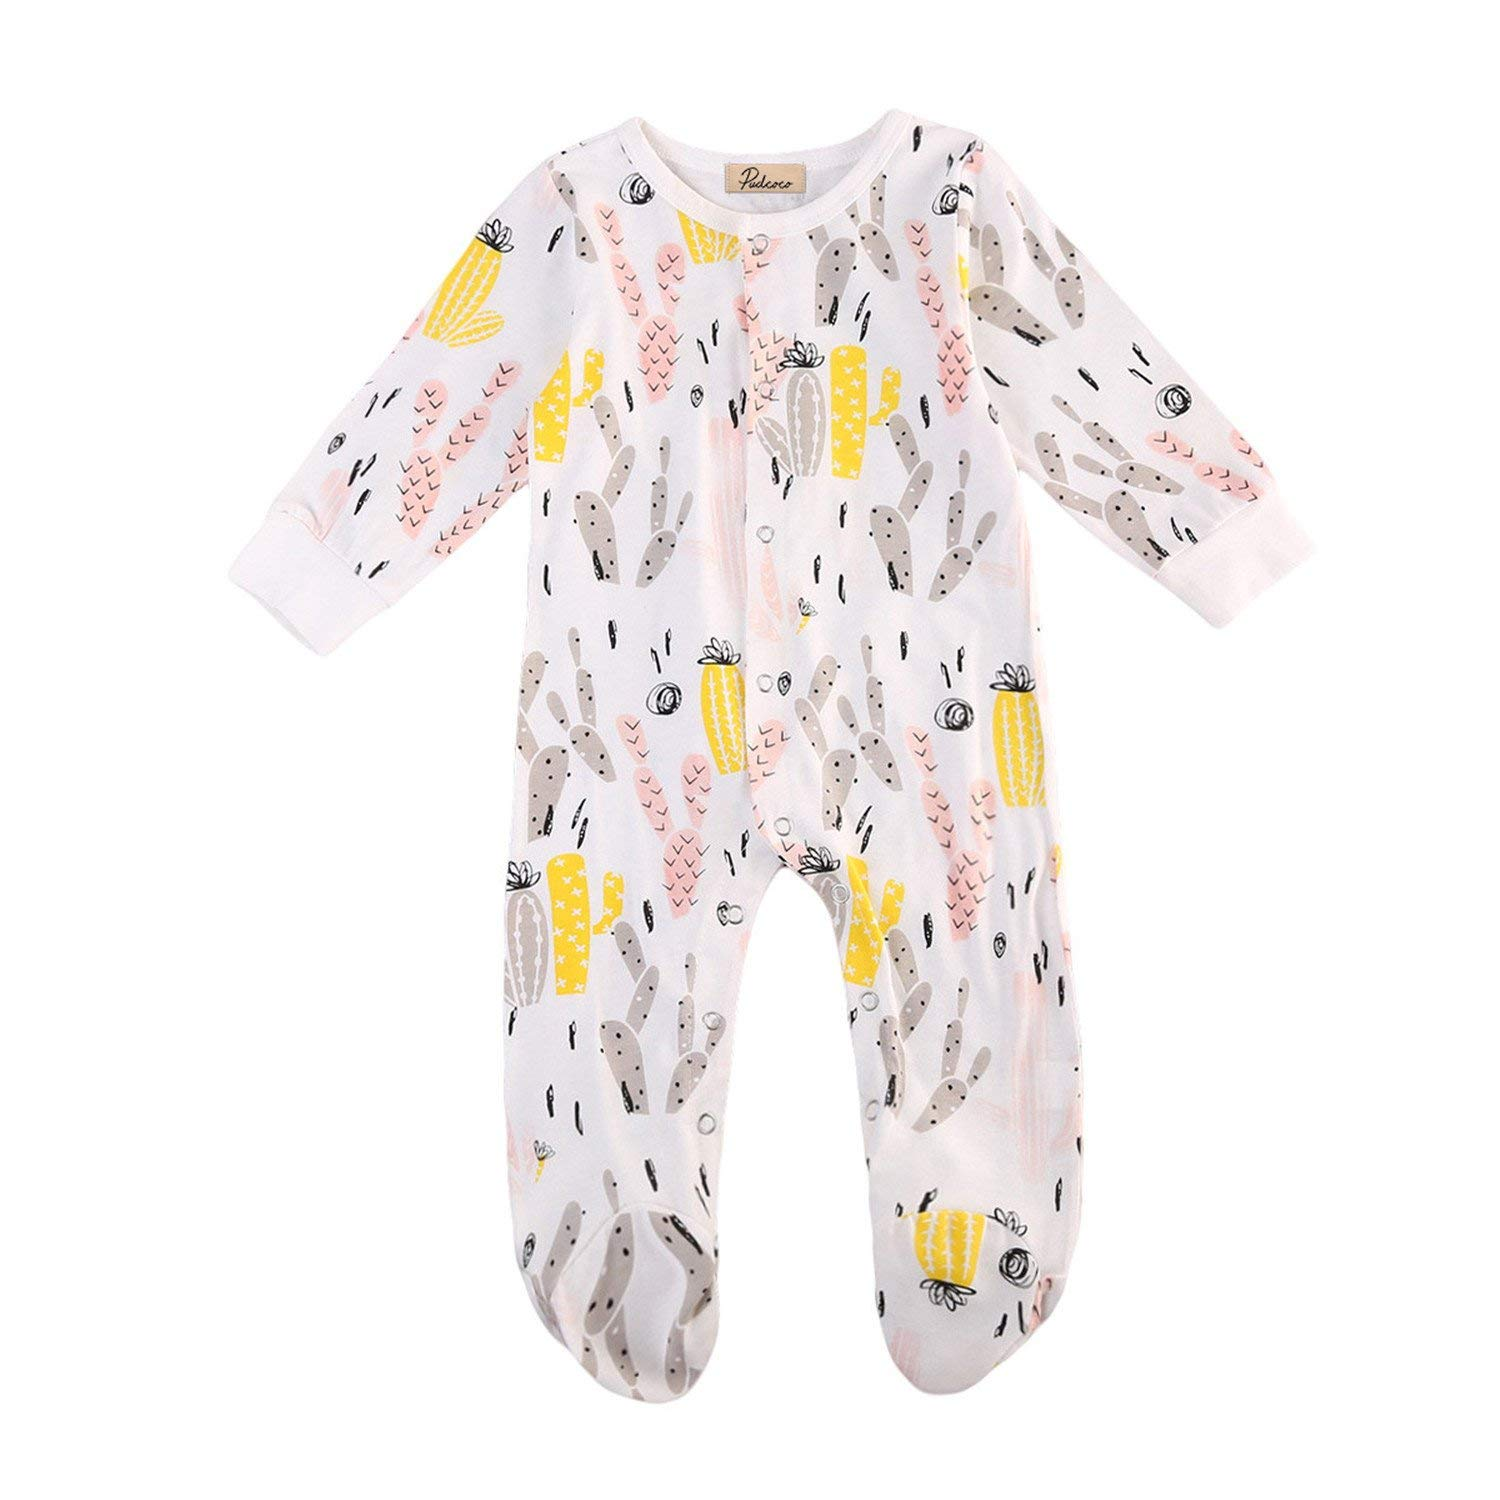 046871e6e Get Quotations · Terryws Newborn Baby Boy Sleepers Buttons Up Patterned  Sleep And Play Suit